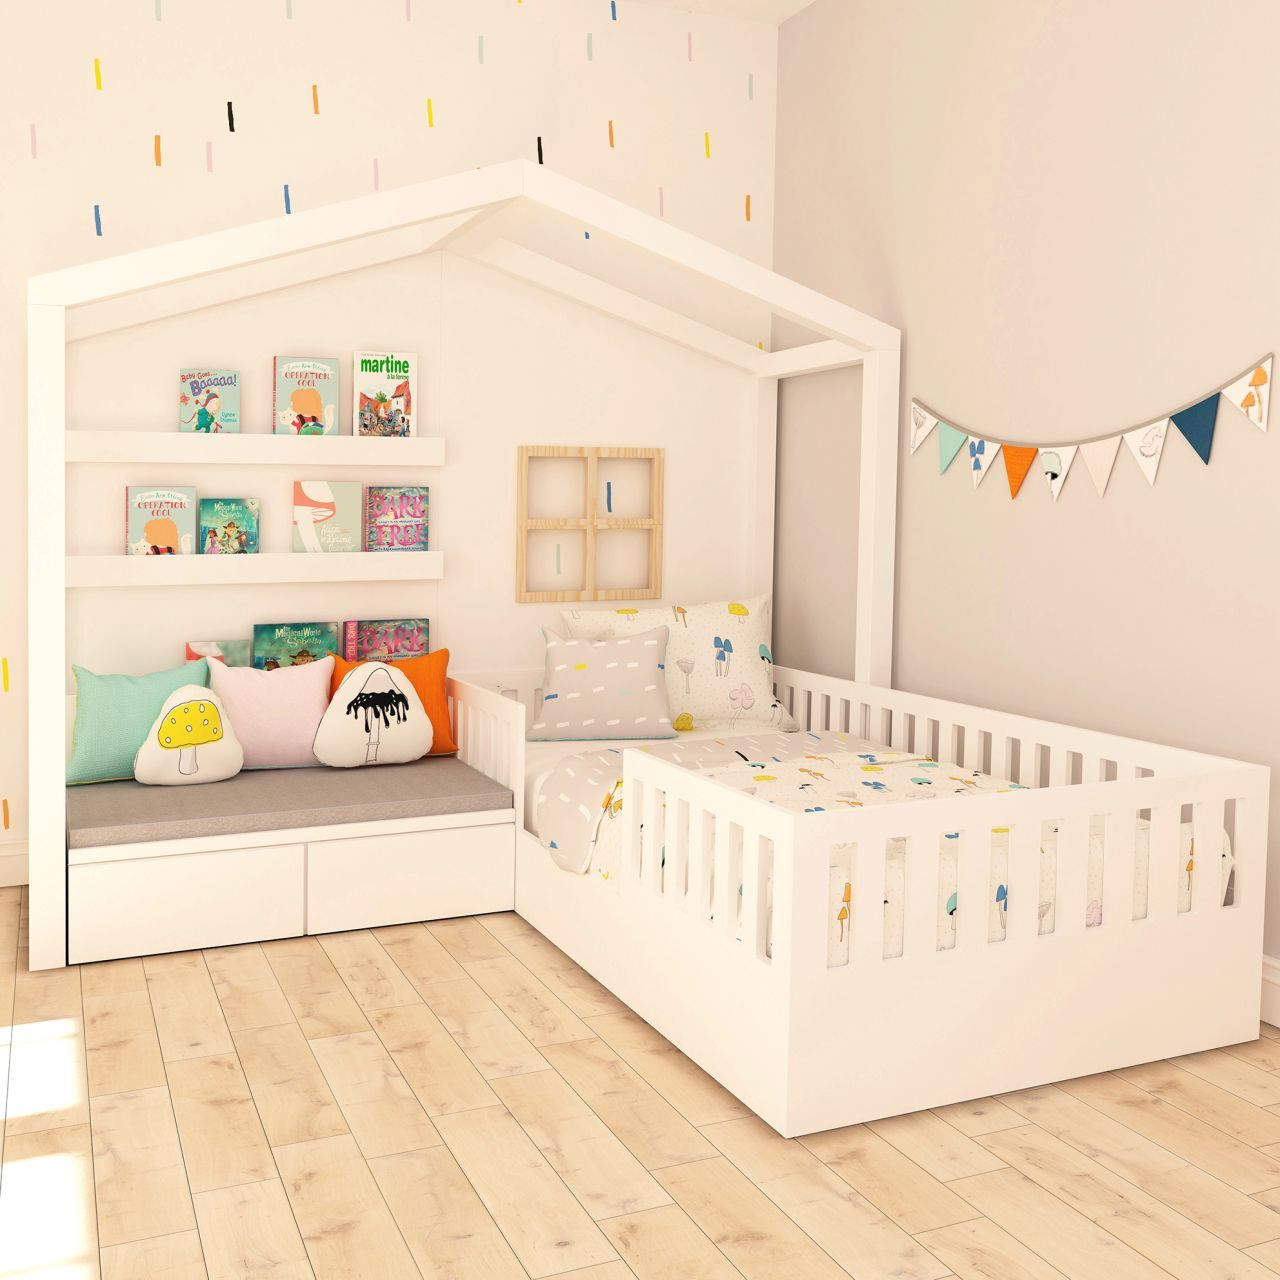 Baby Boy Room Decor Adorable Budget Friendly Boy Nursery: 10+ Great Baby Room Ideas For Parents To Use In Their